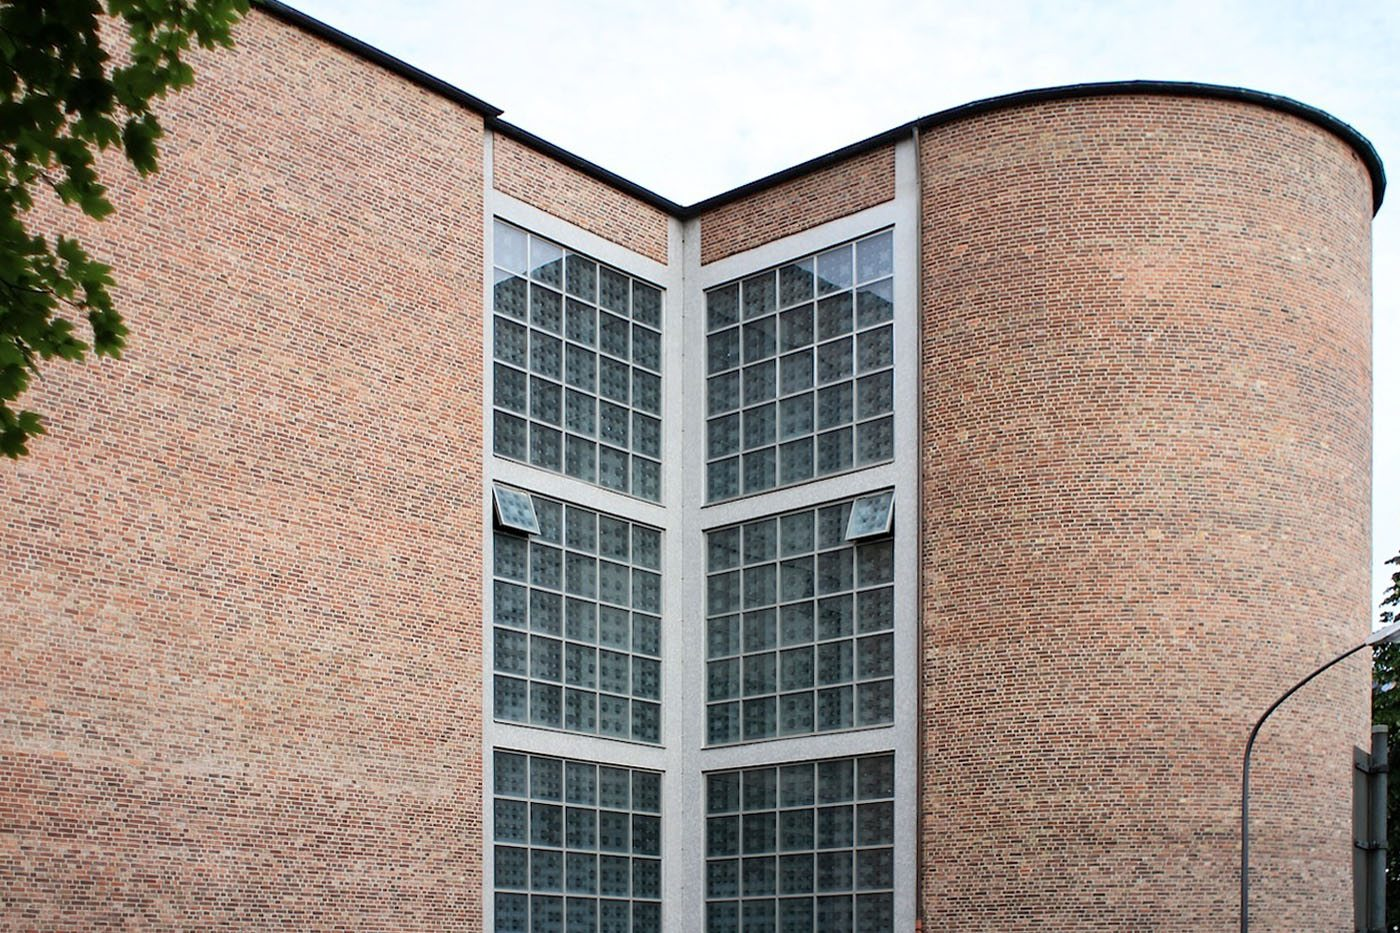 St. Andrew's Church.  The simple building with its clear, round forms, is clad with bricks.